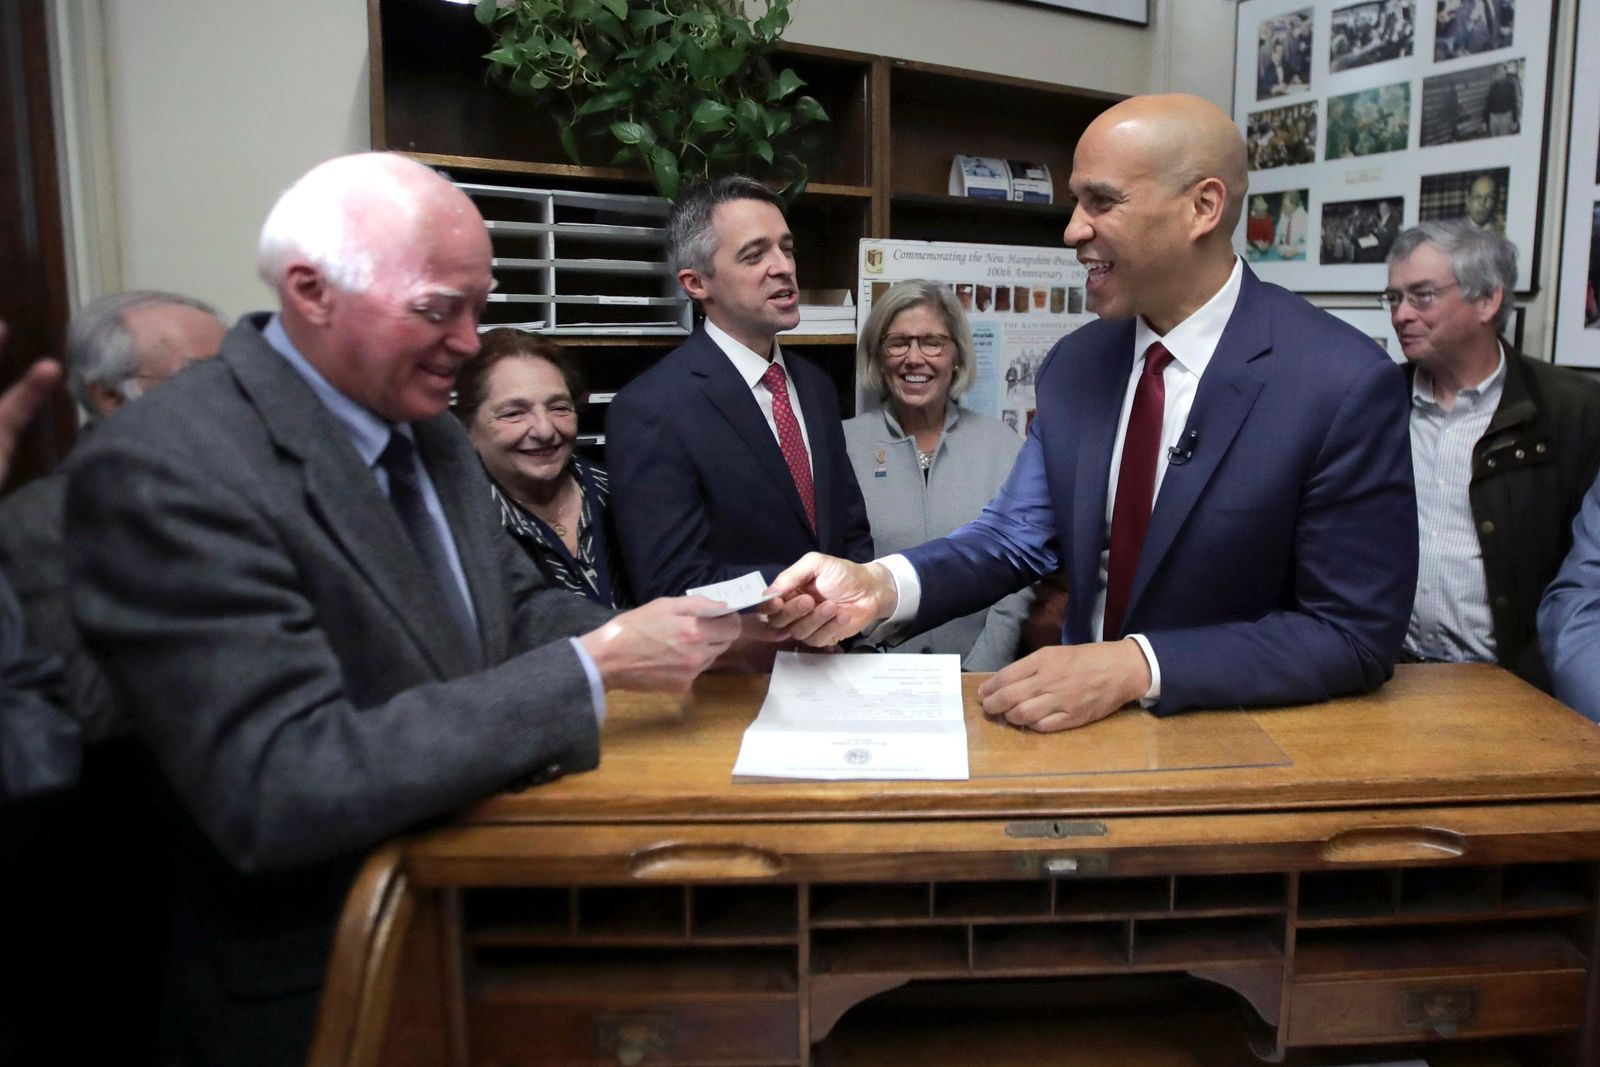 Democratic presidential candidate Sen. Cory Booker, D-N.J., pays the filing fee to have his name listed on the New Hampshire primary ballot, Friday, Nov. 15, 2019, in Concord, N.H. At left is New Hampshire Secretary of State Bill Gardner. (AP Photo/Charles Krupa)